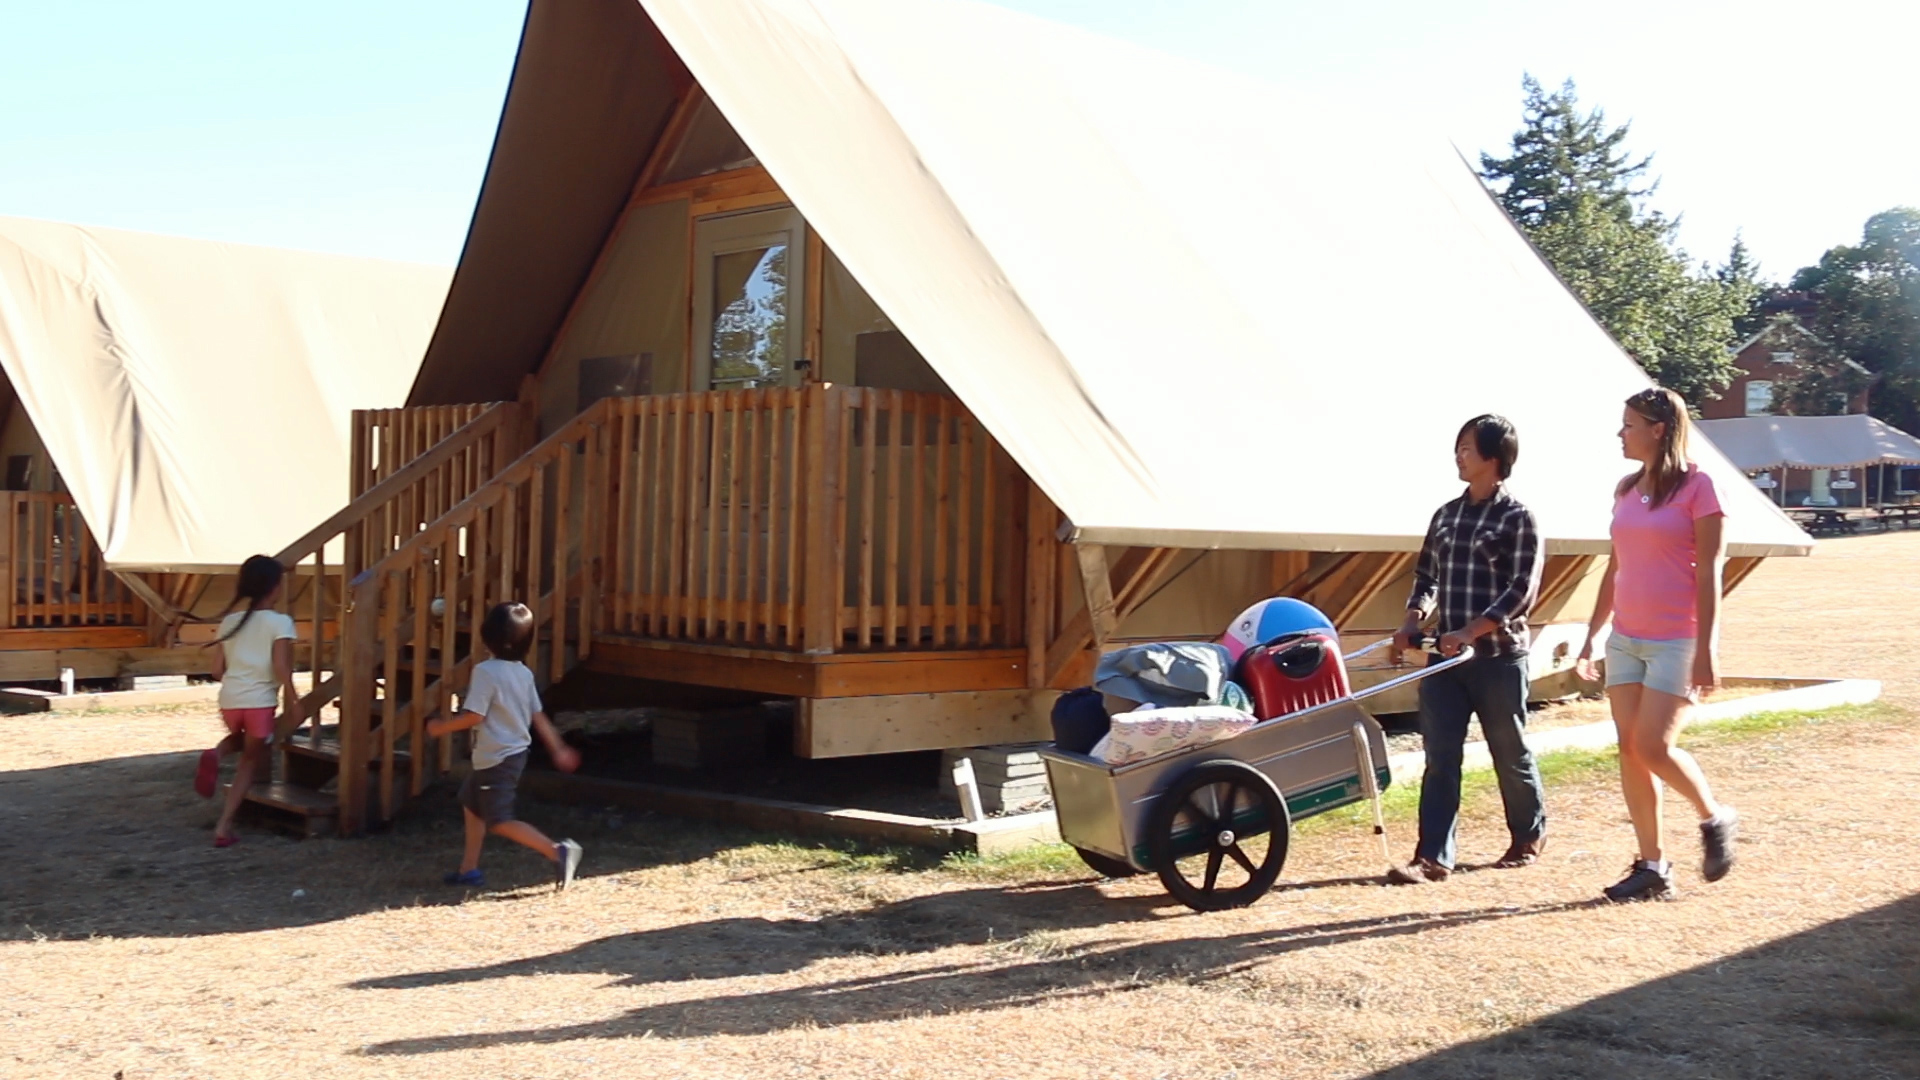 Looking for exciting new experiences in Vancouver and Victoria? Stay overnight in an oTENTik, a unique camping offer that blends homey comfort and outdoor adventure.